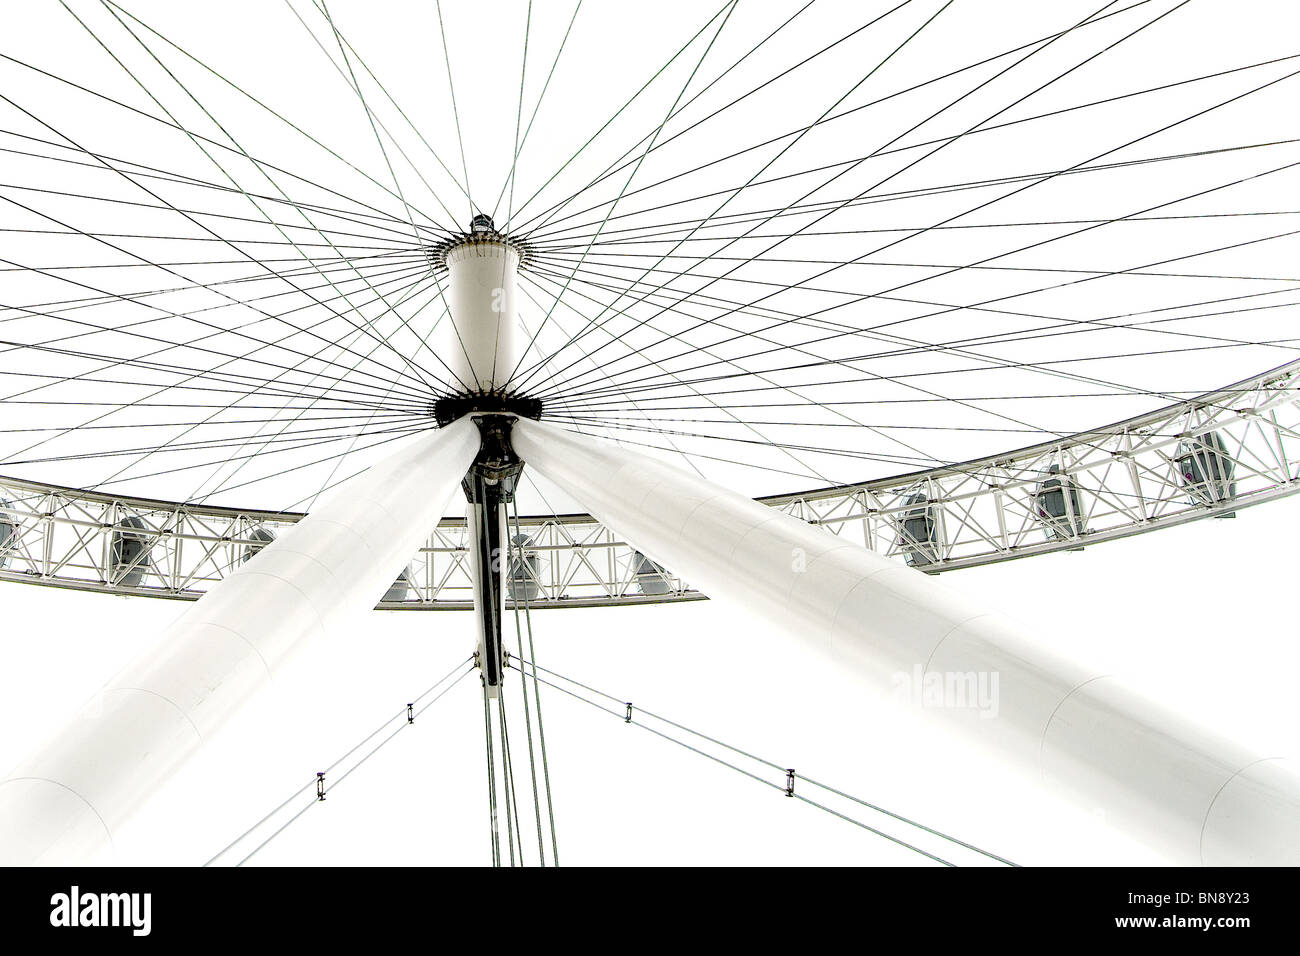 High contrast image of The London Eye from an unusual angle. - Stock Image